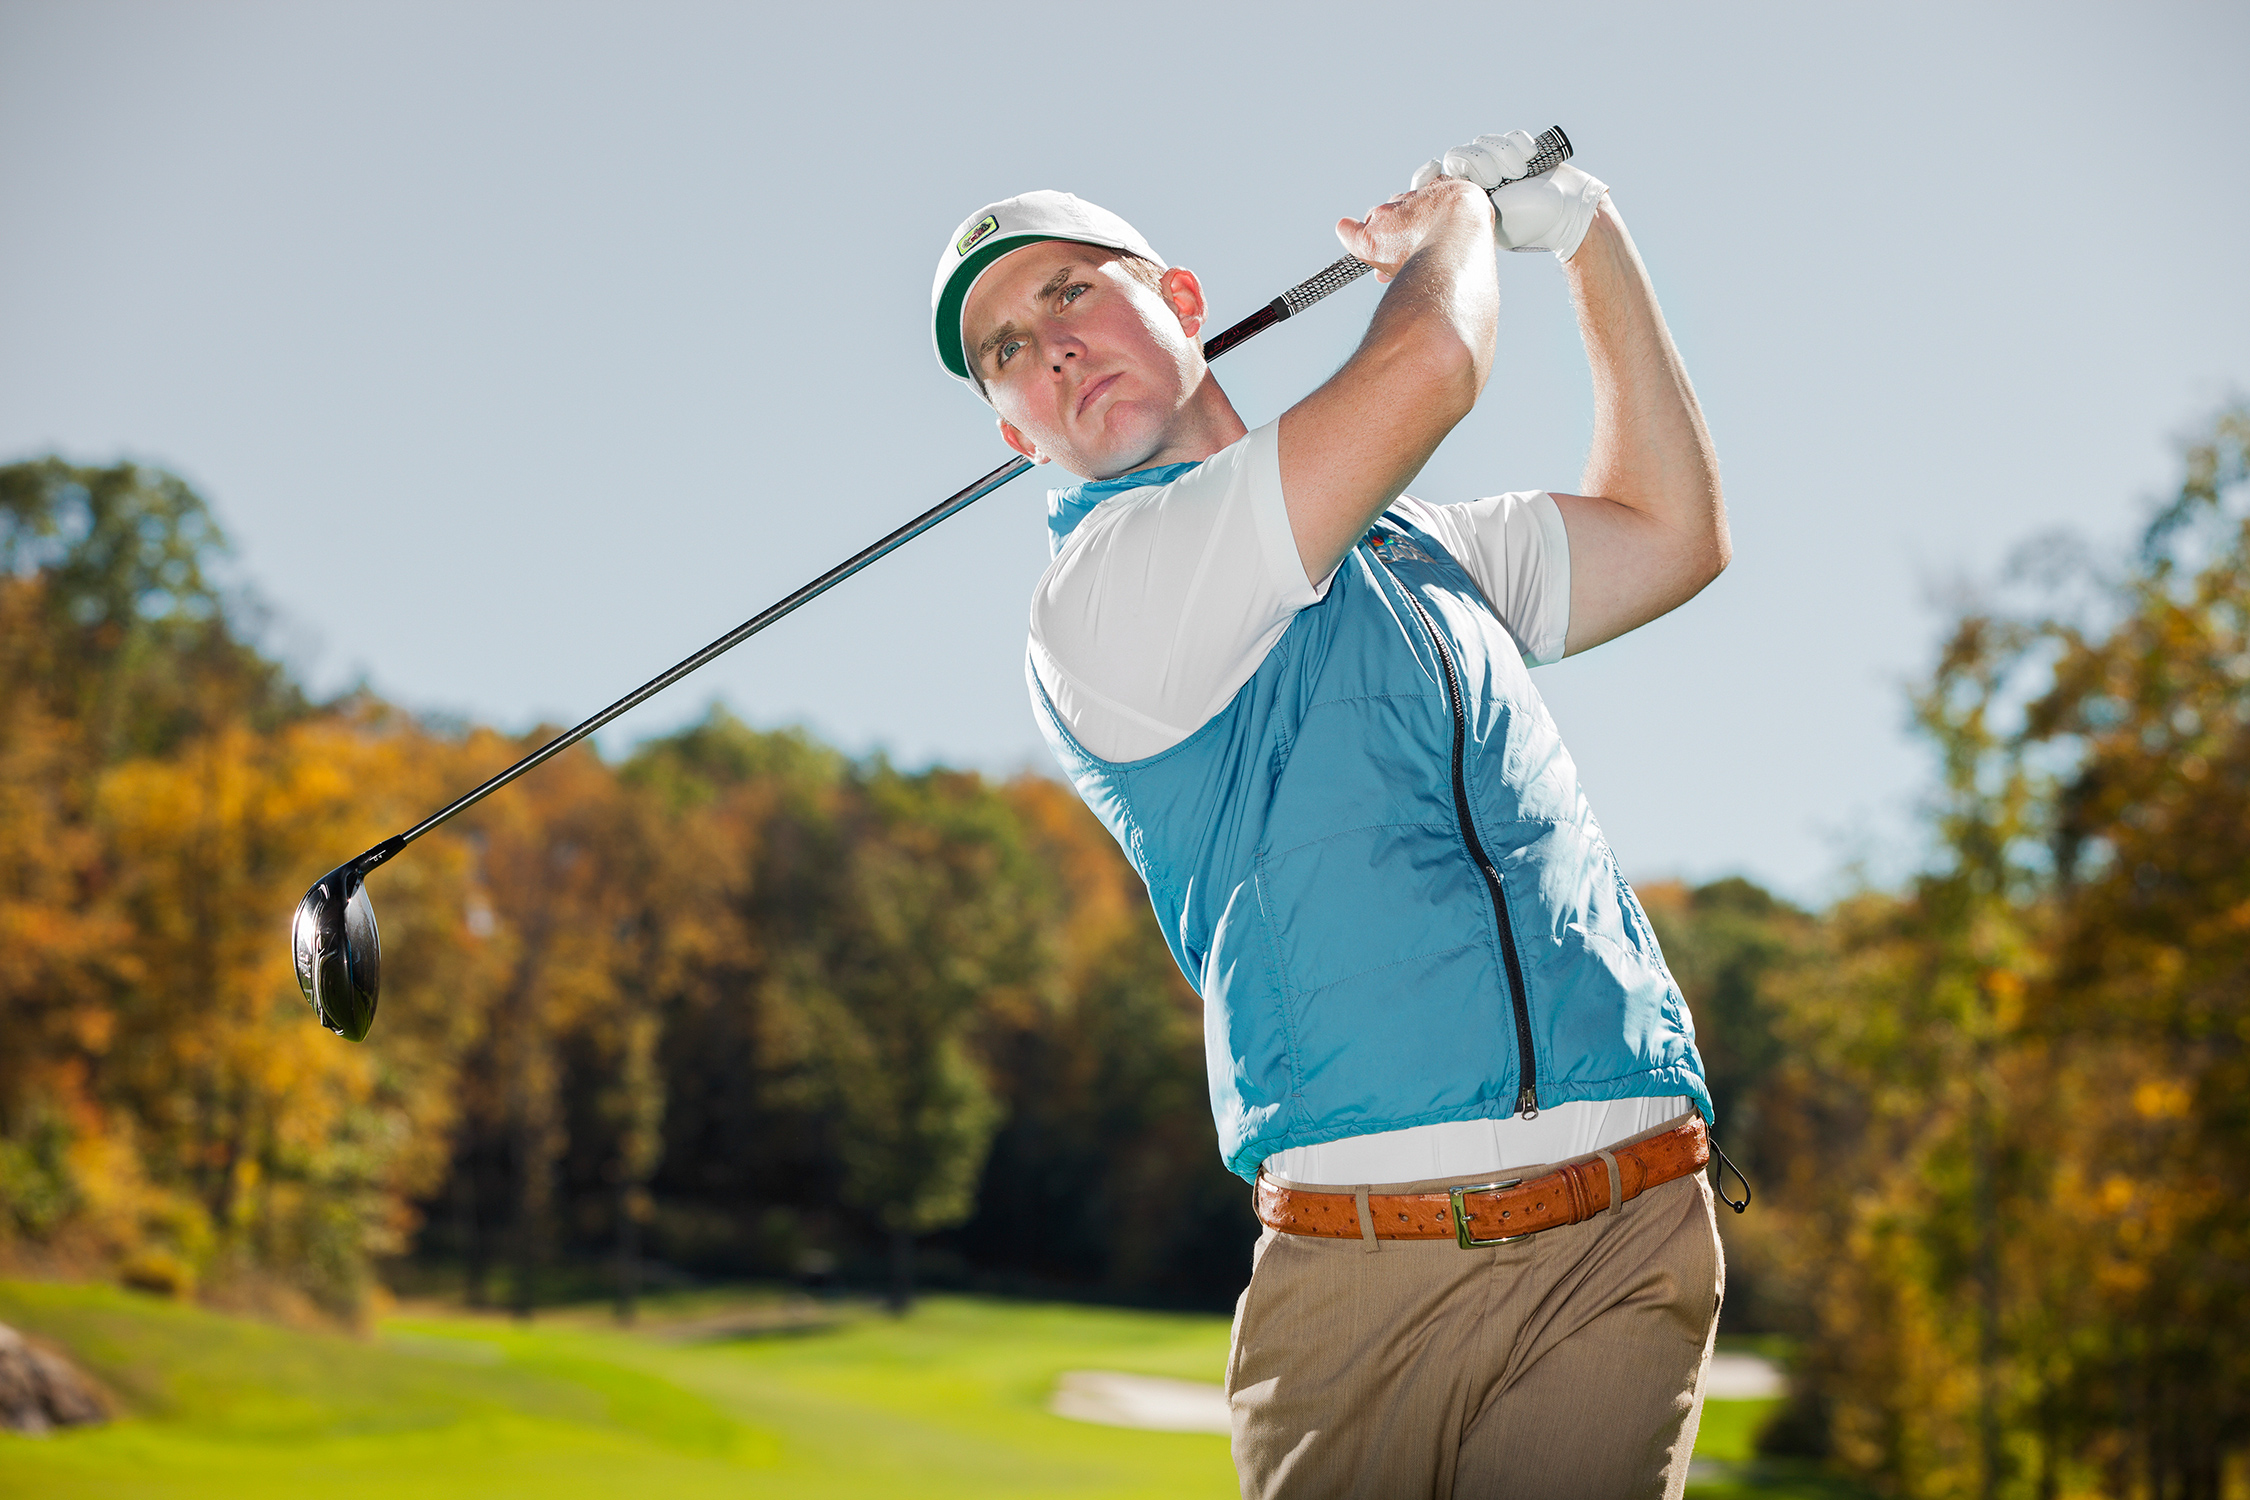 JUSTIN-FOSTER GOLF PRO SPORTS CREATIVE SPORTS PORTRAIT SWING TRAP PGA 101917 ©-JONATHAN-R.-BECKERMAN-PHOTOGRAPHY 3.jpg